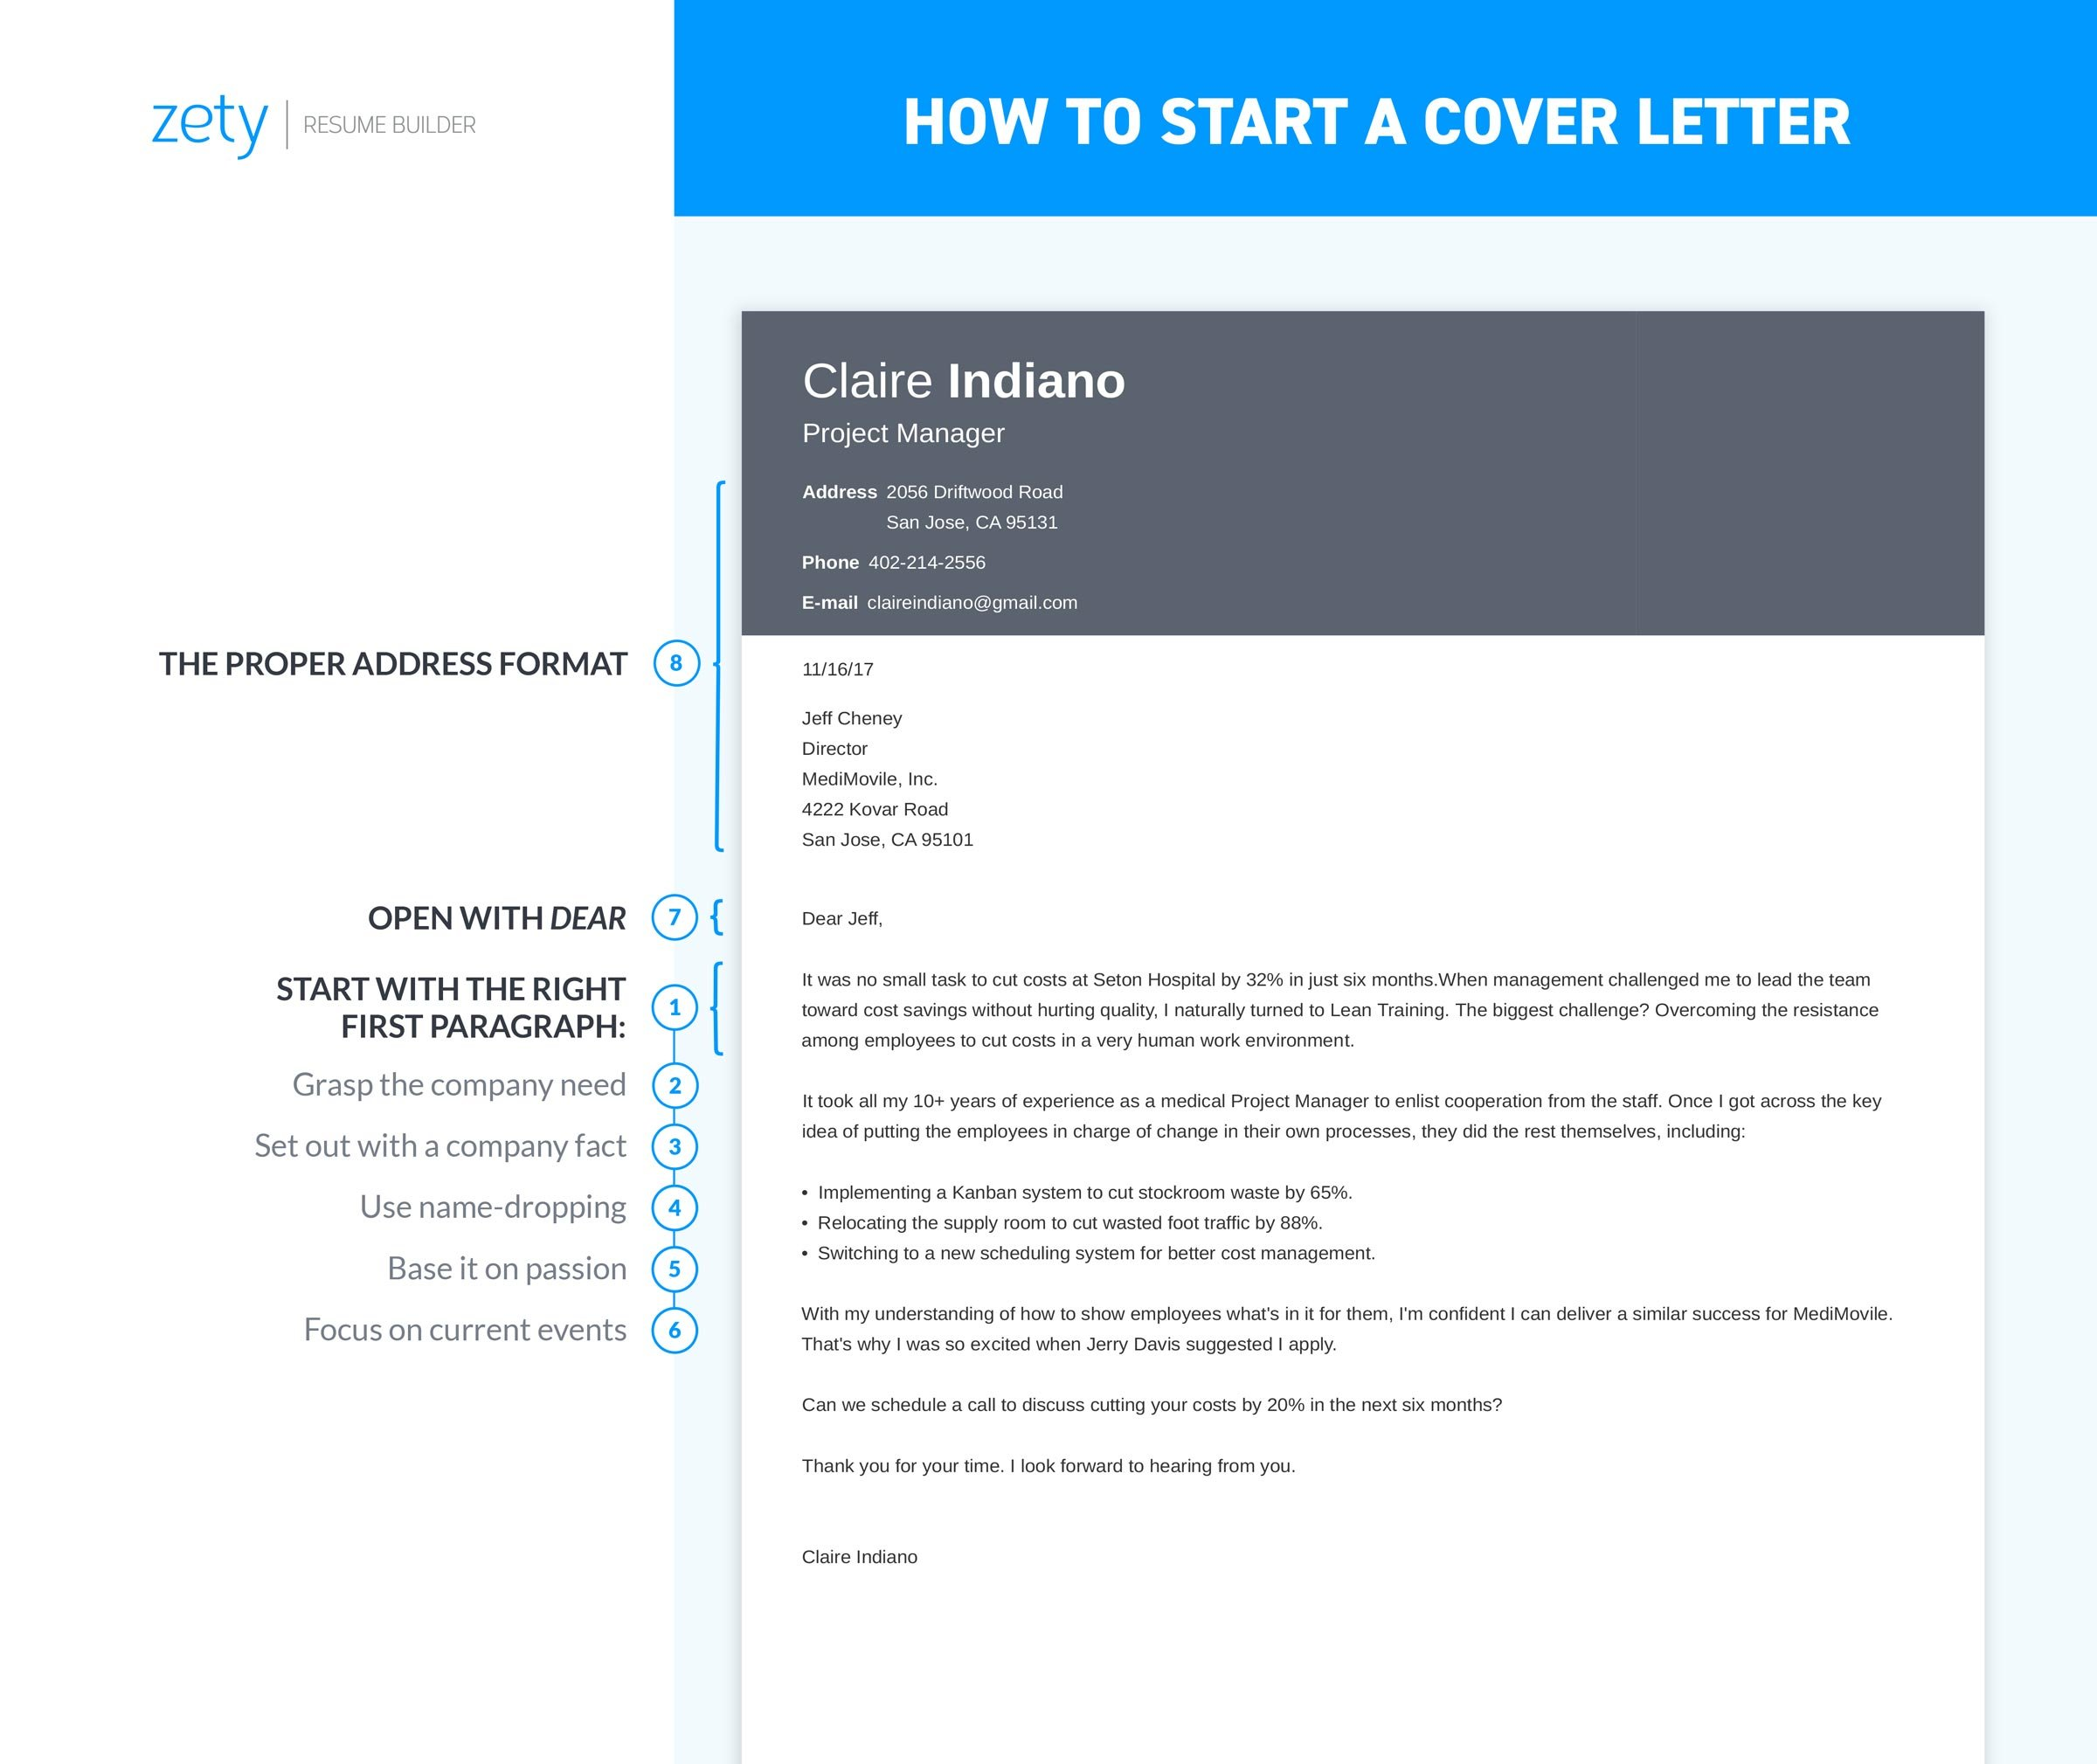 Infographic On How To Start A Cover Letter